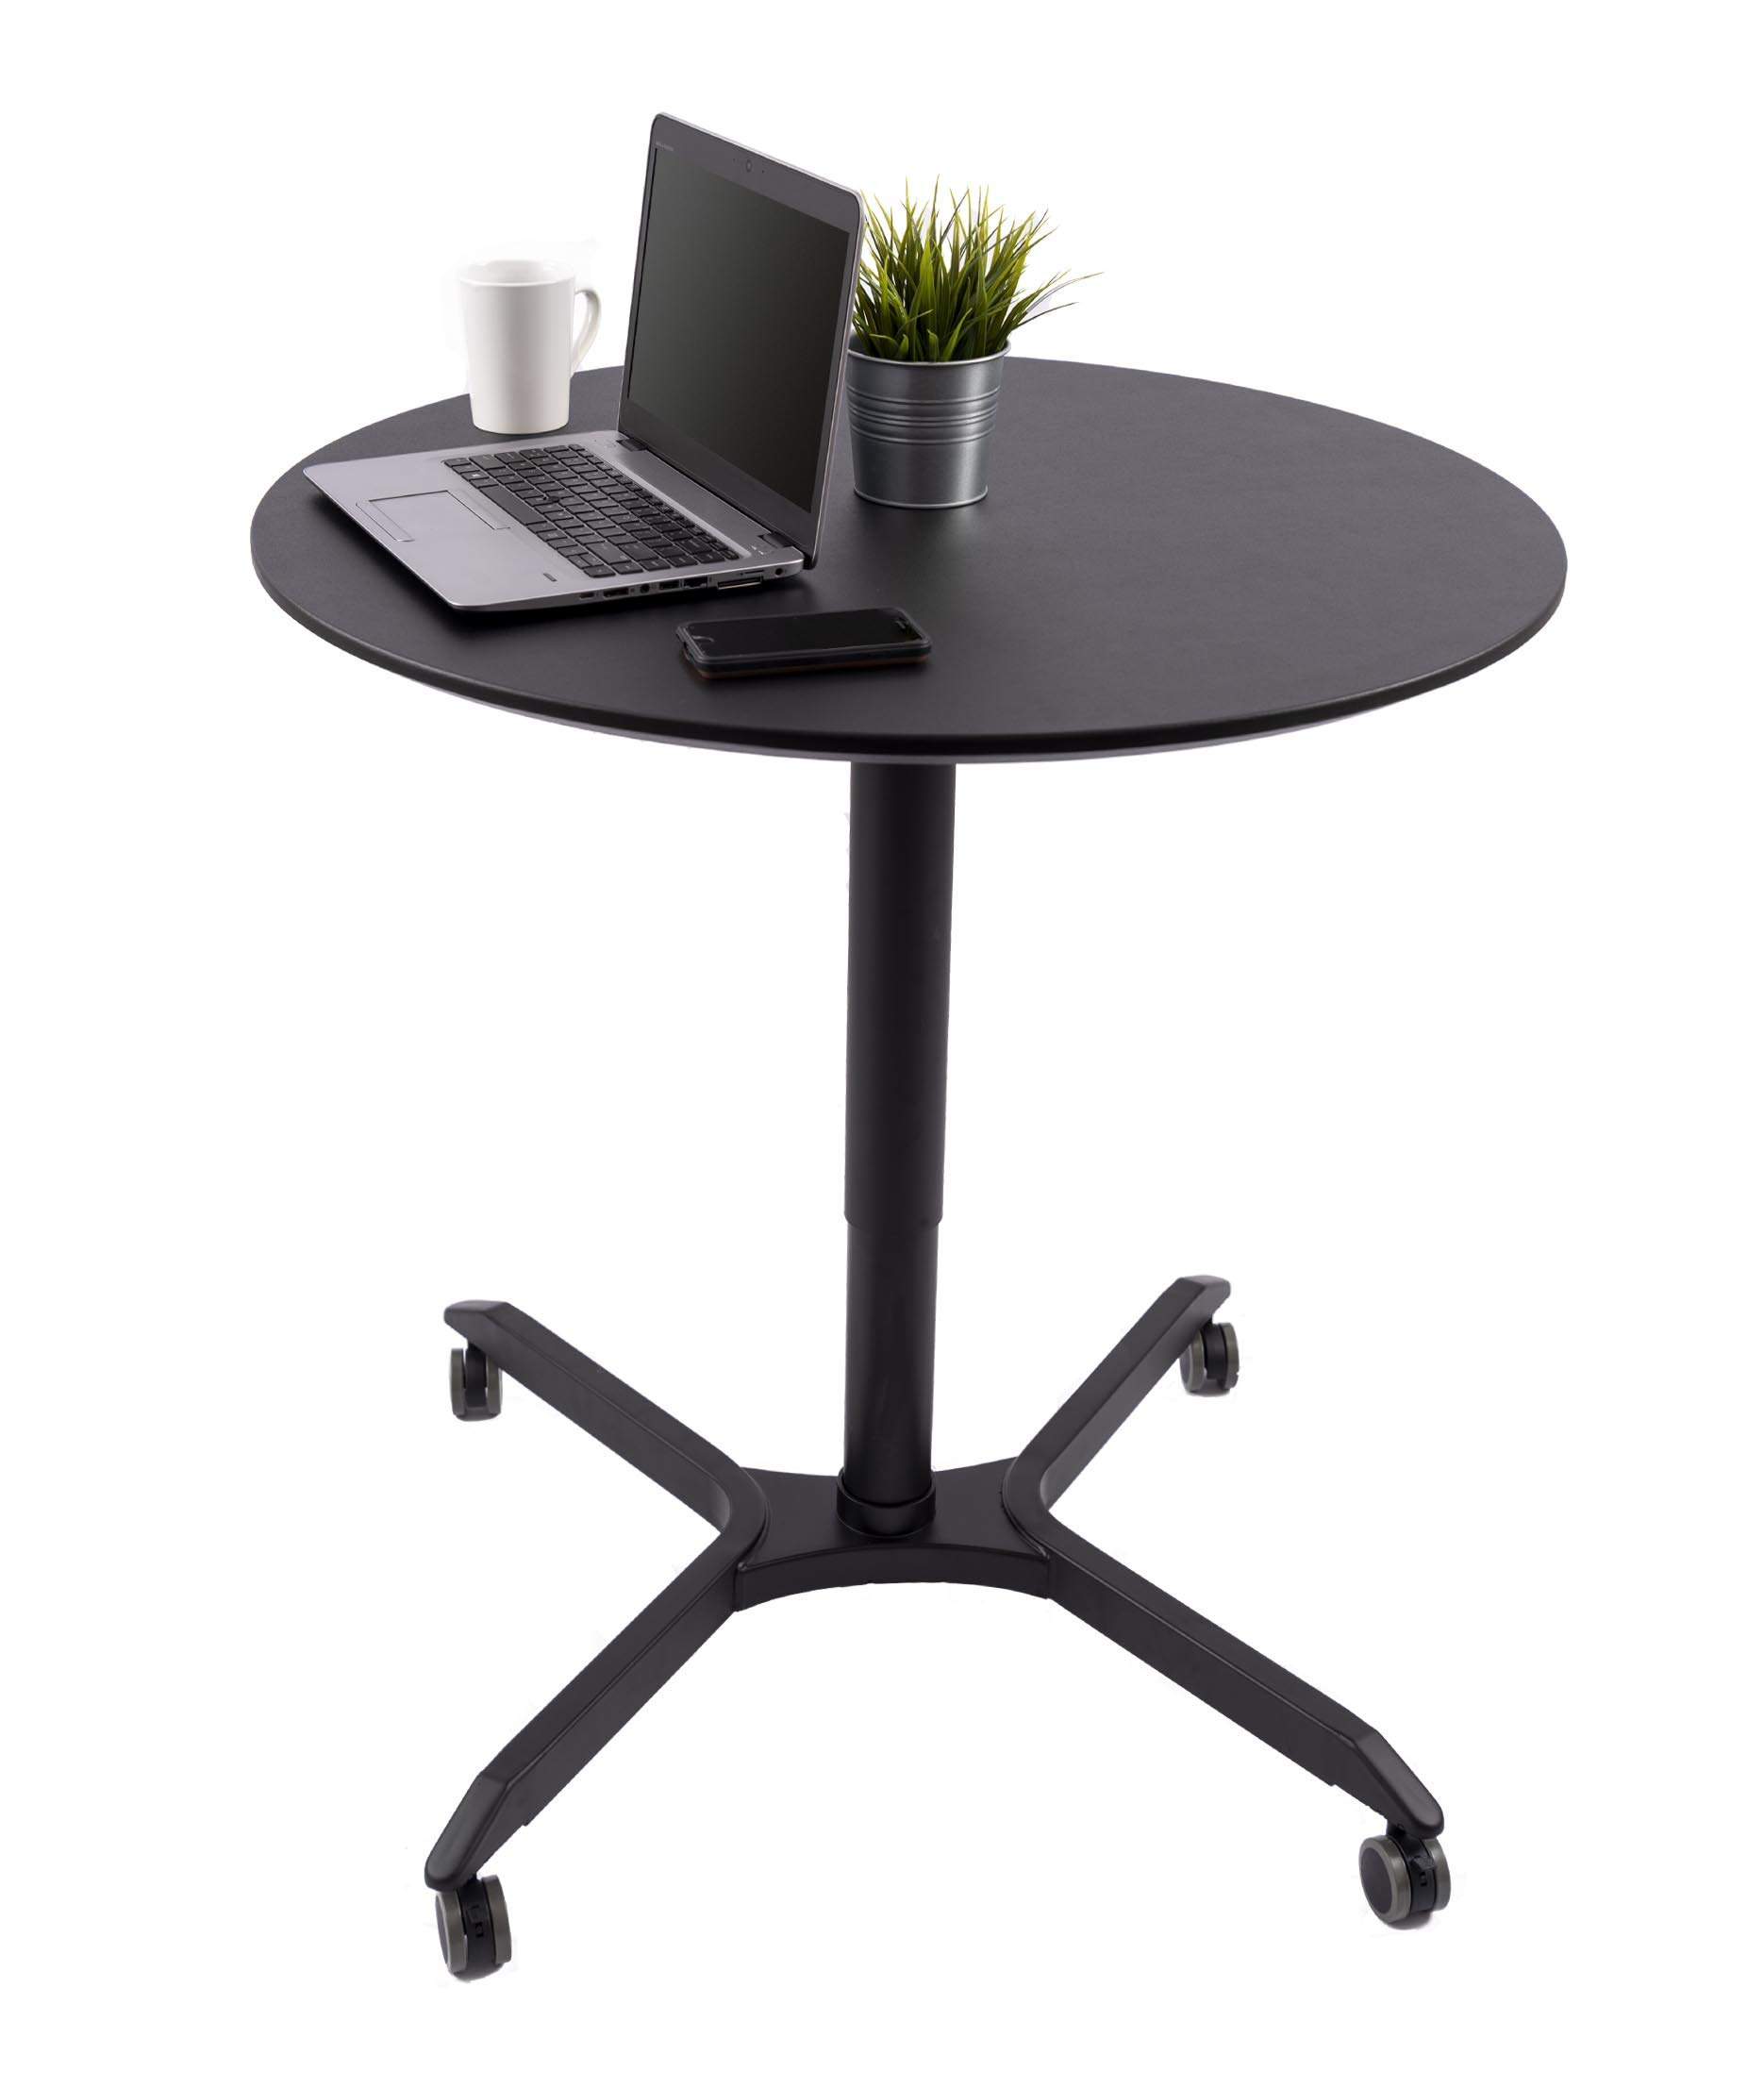 Stand Up Desk Store Pneumatic Adjustable-Height Cafe Table | Breakroom Table - (35'', Black Frame/Black Top) by Stand Up Desk Store